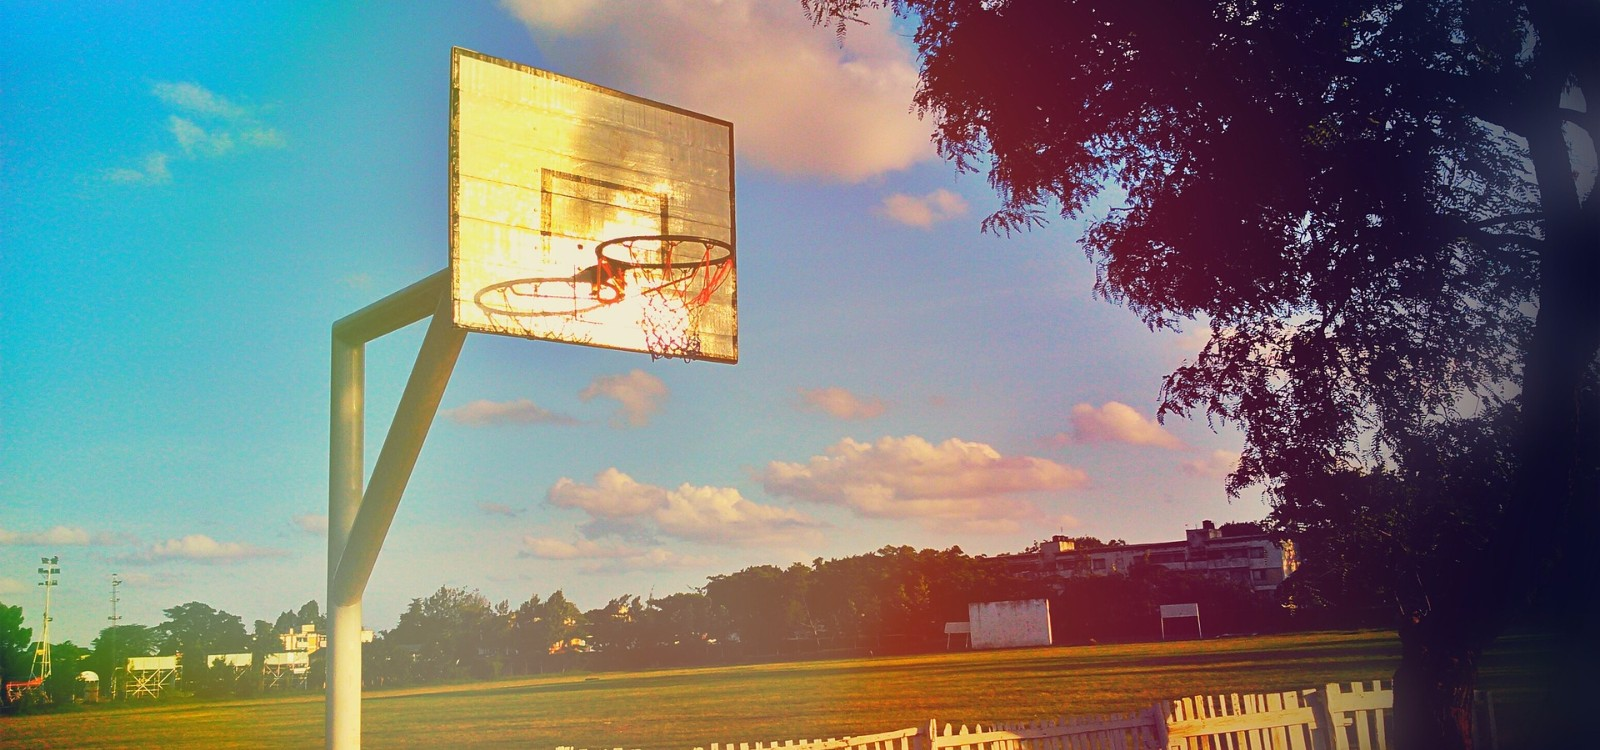 Basketball Hoop with Sun